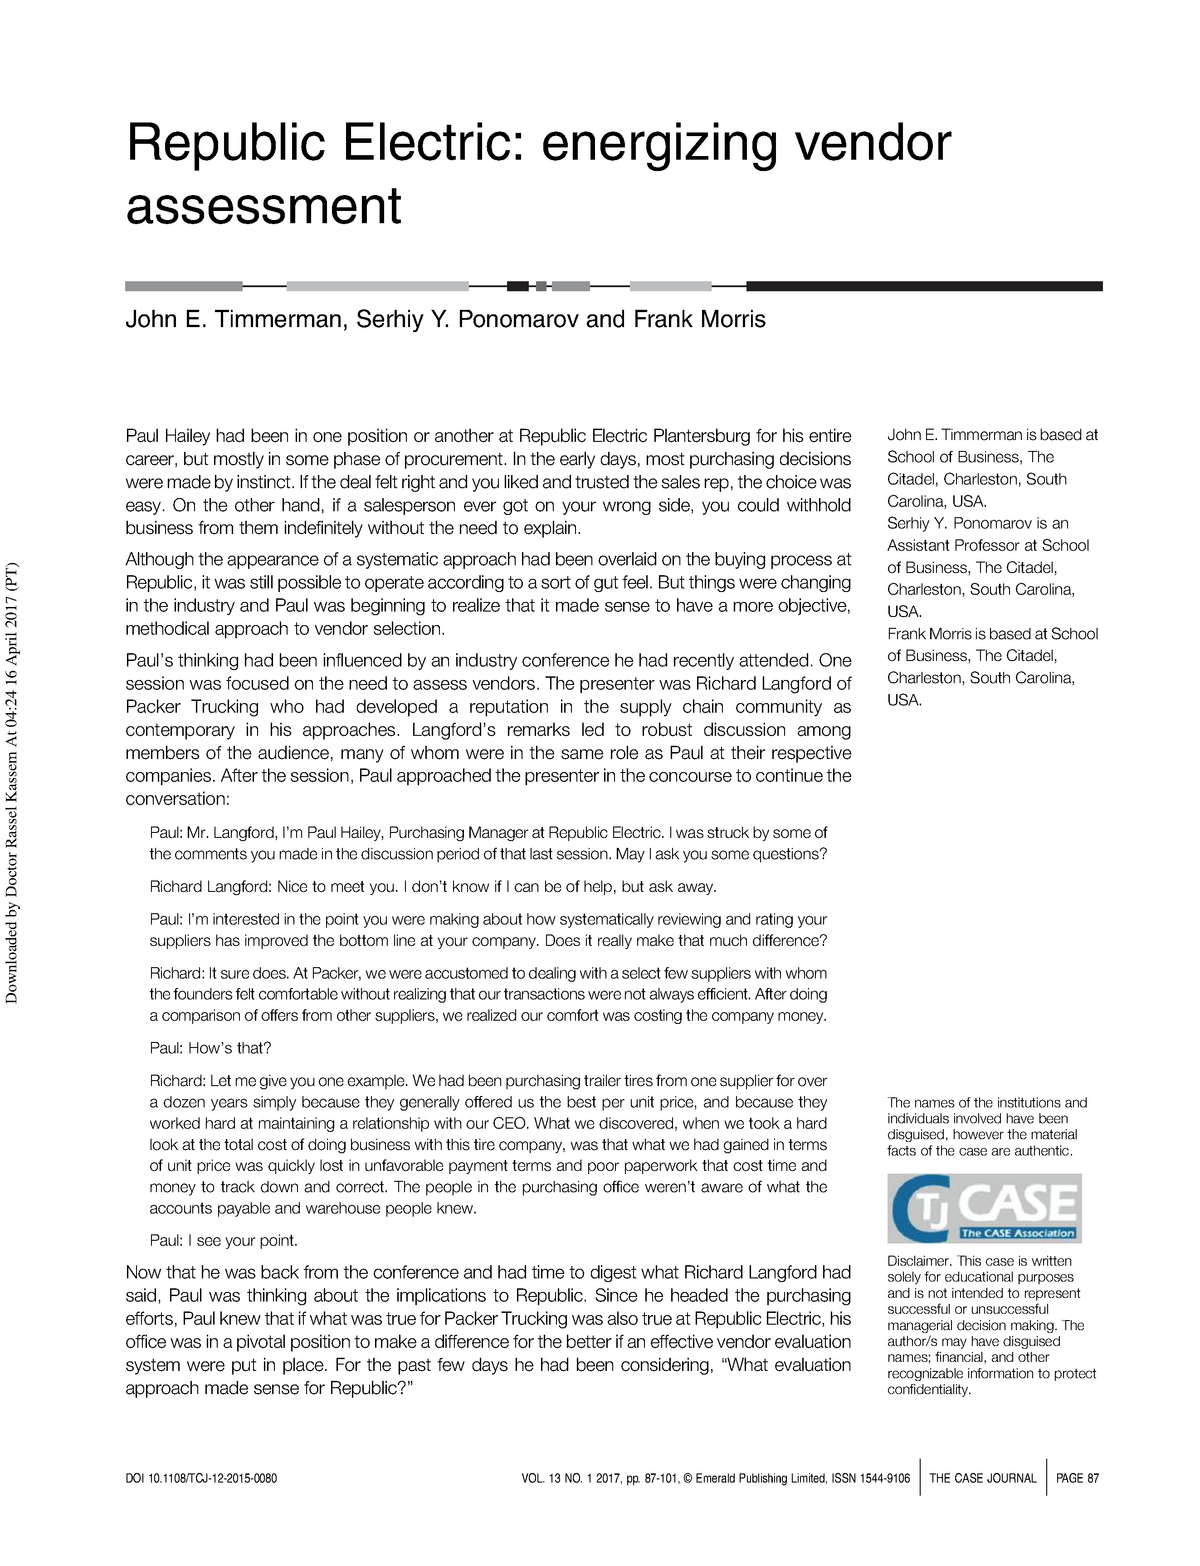 Case Study for Individual Assignment - EUROICADE401